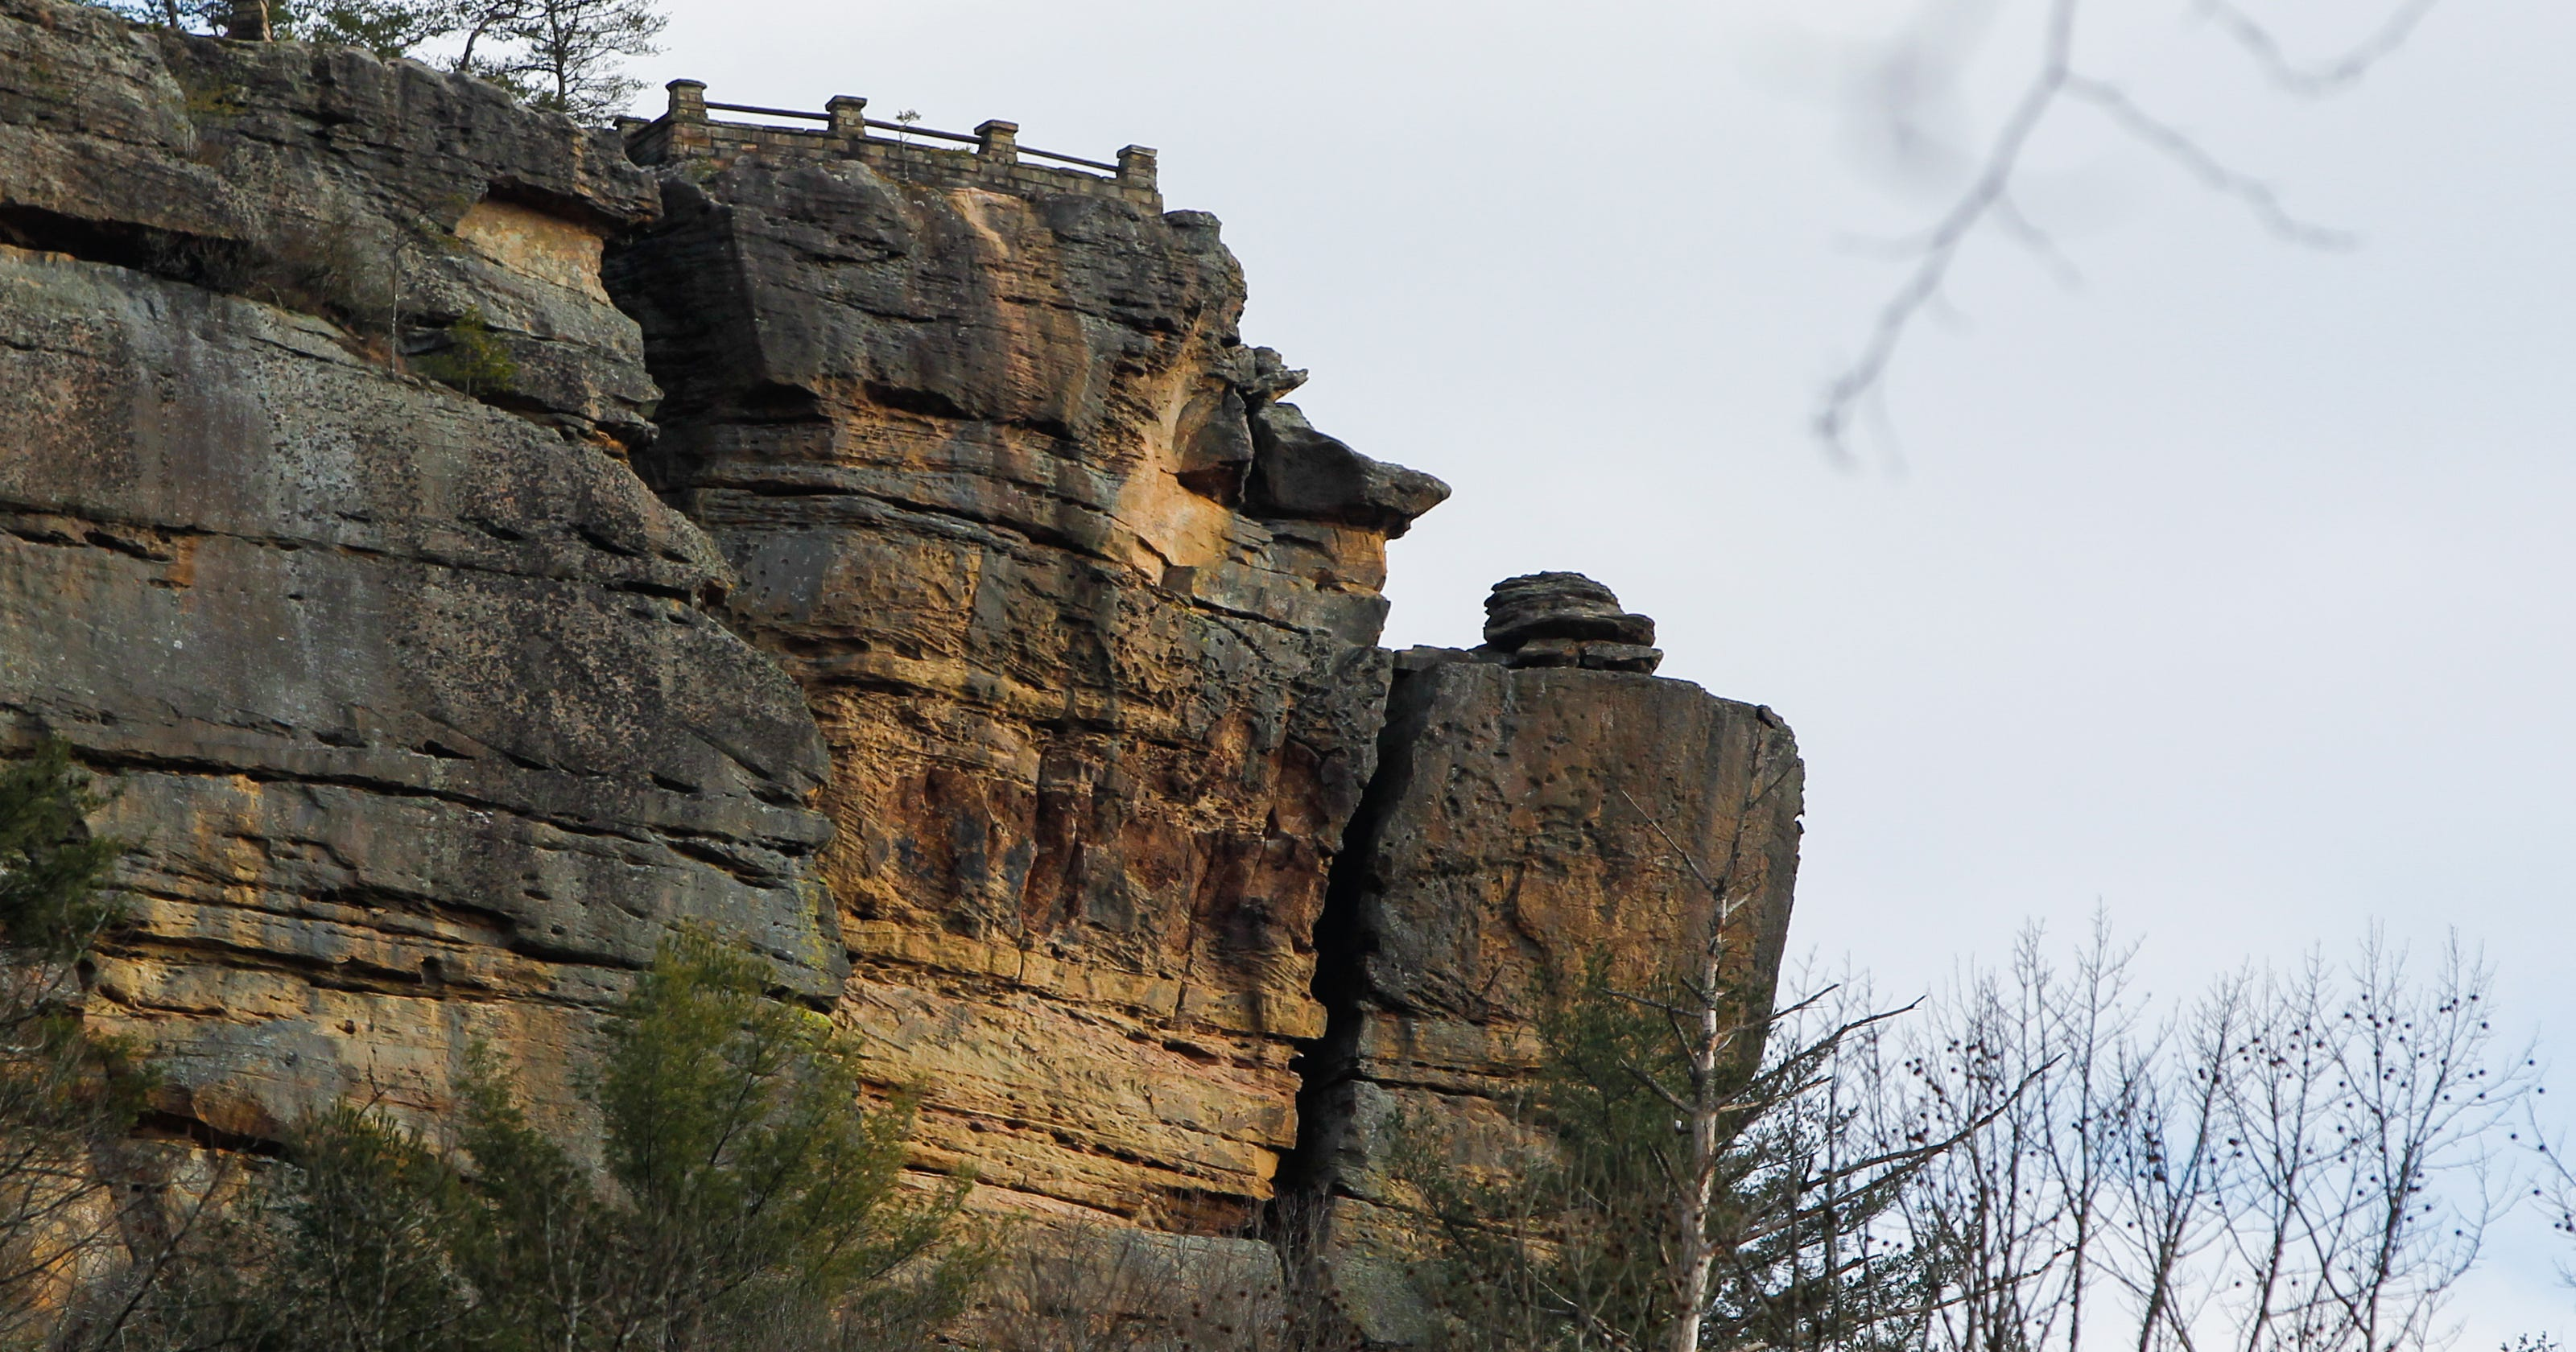 Concerns within Red River Gorge